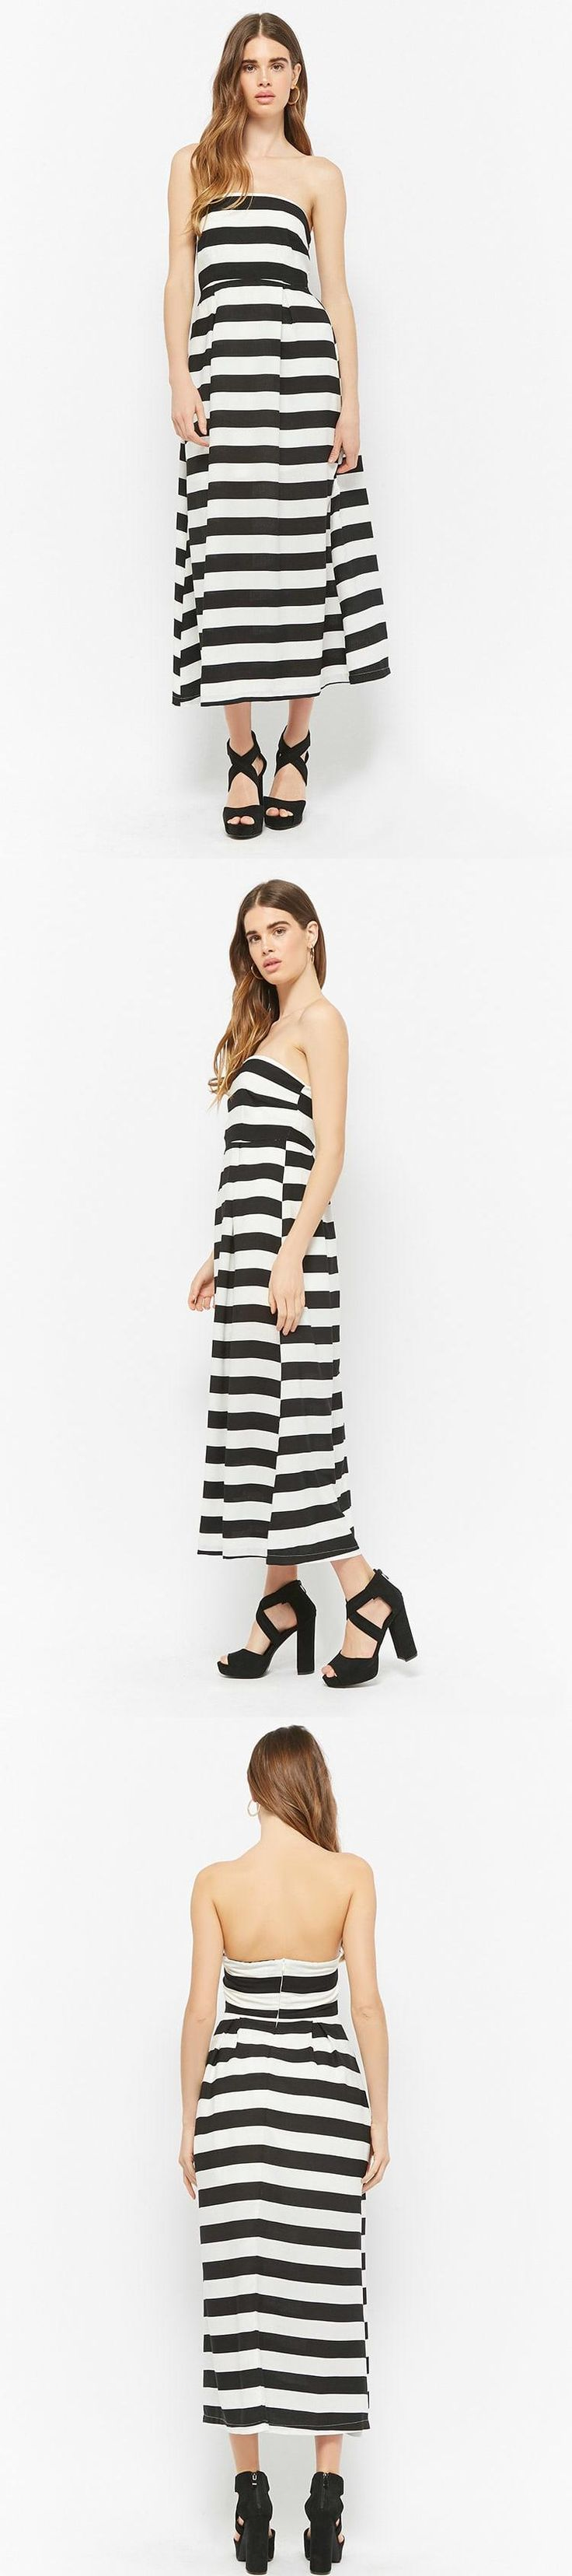 Striped Tube Maxi Dress // 38.00 USD // Forever 21